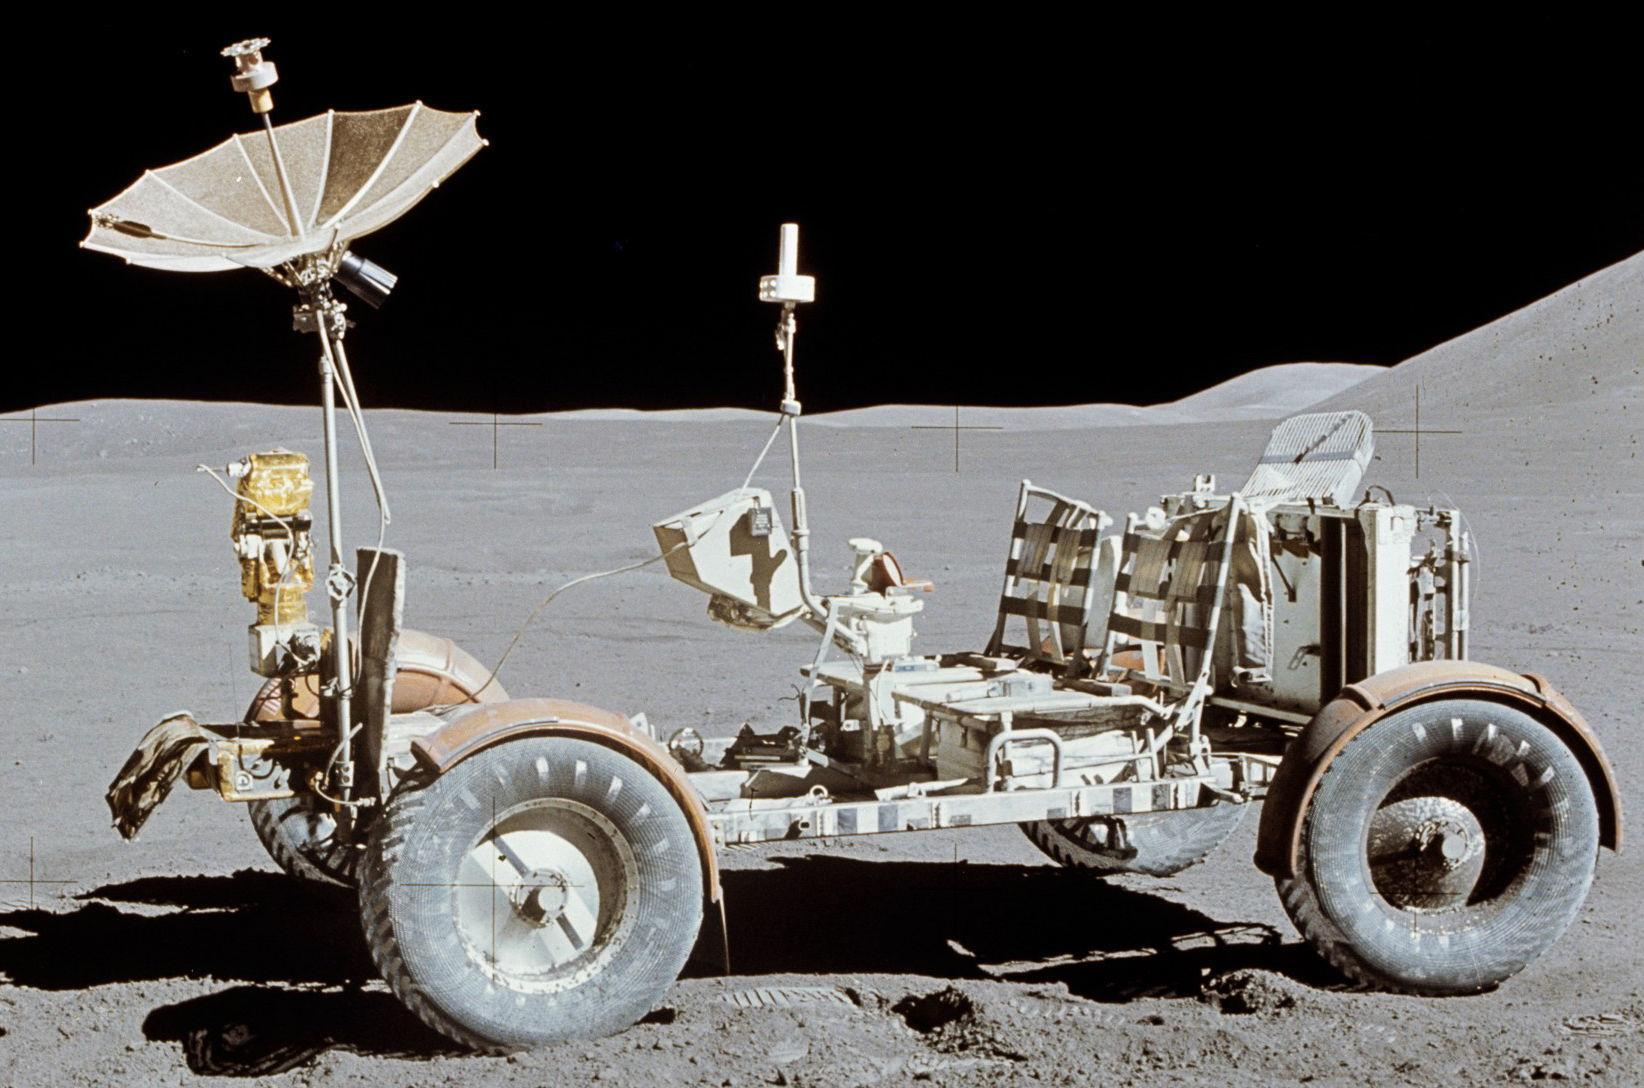 Image - First hydrogen fuel cell vehicle c. 1971.  The keys are still in it, let's go for a ride on the moon. - Post 341